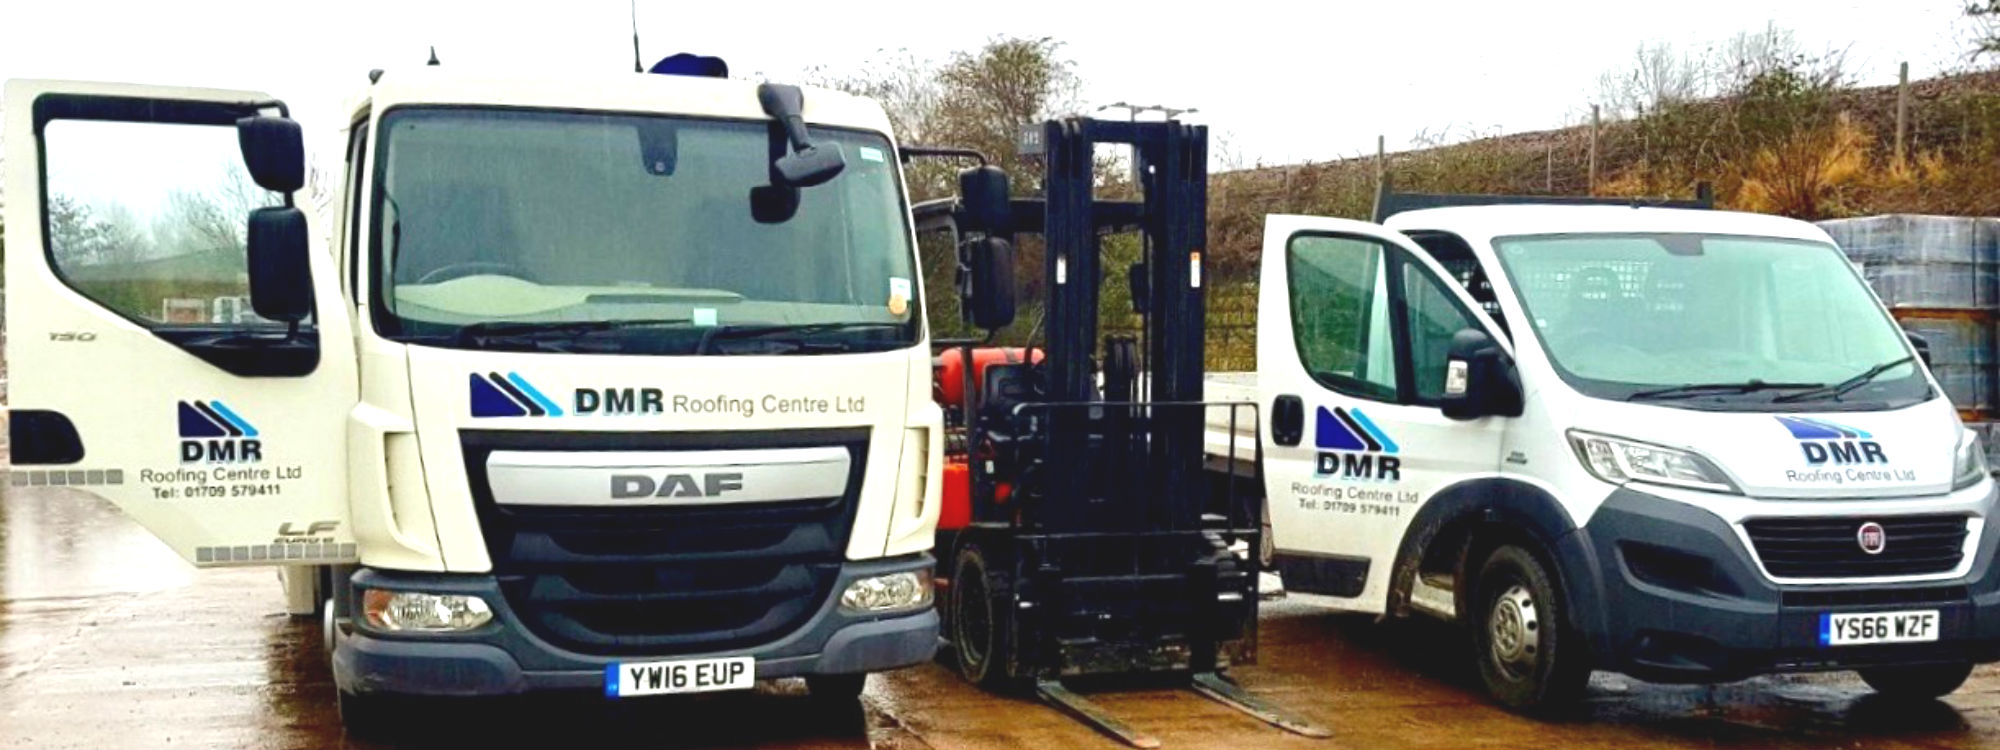 DMR Roofing Centre, Building Supplies Near Me, Contact, DMR Roofing, Building Materials, South Yorkshire Roofing